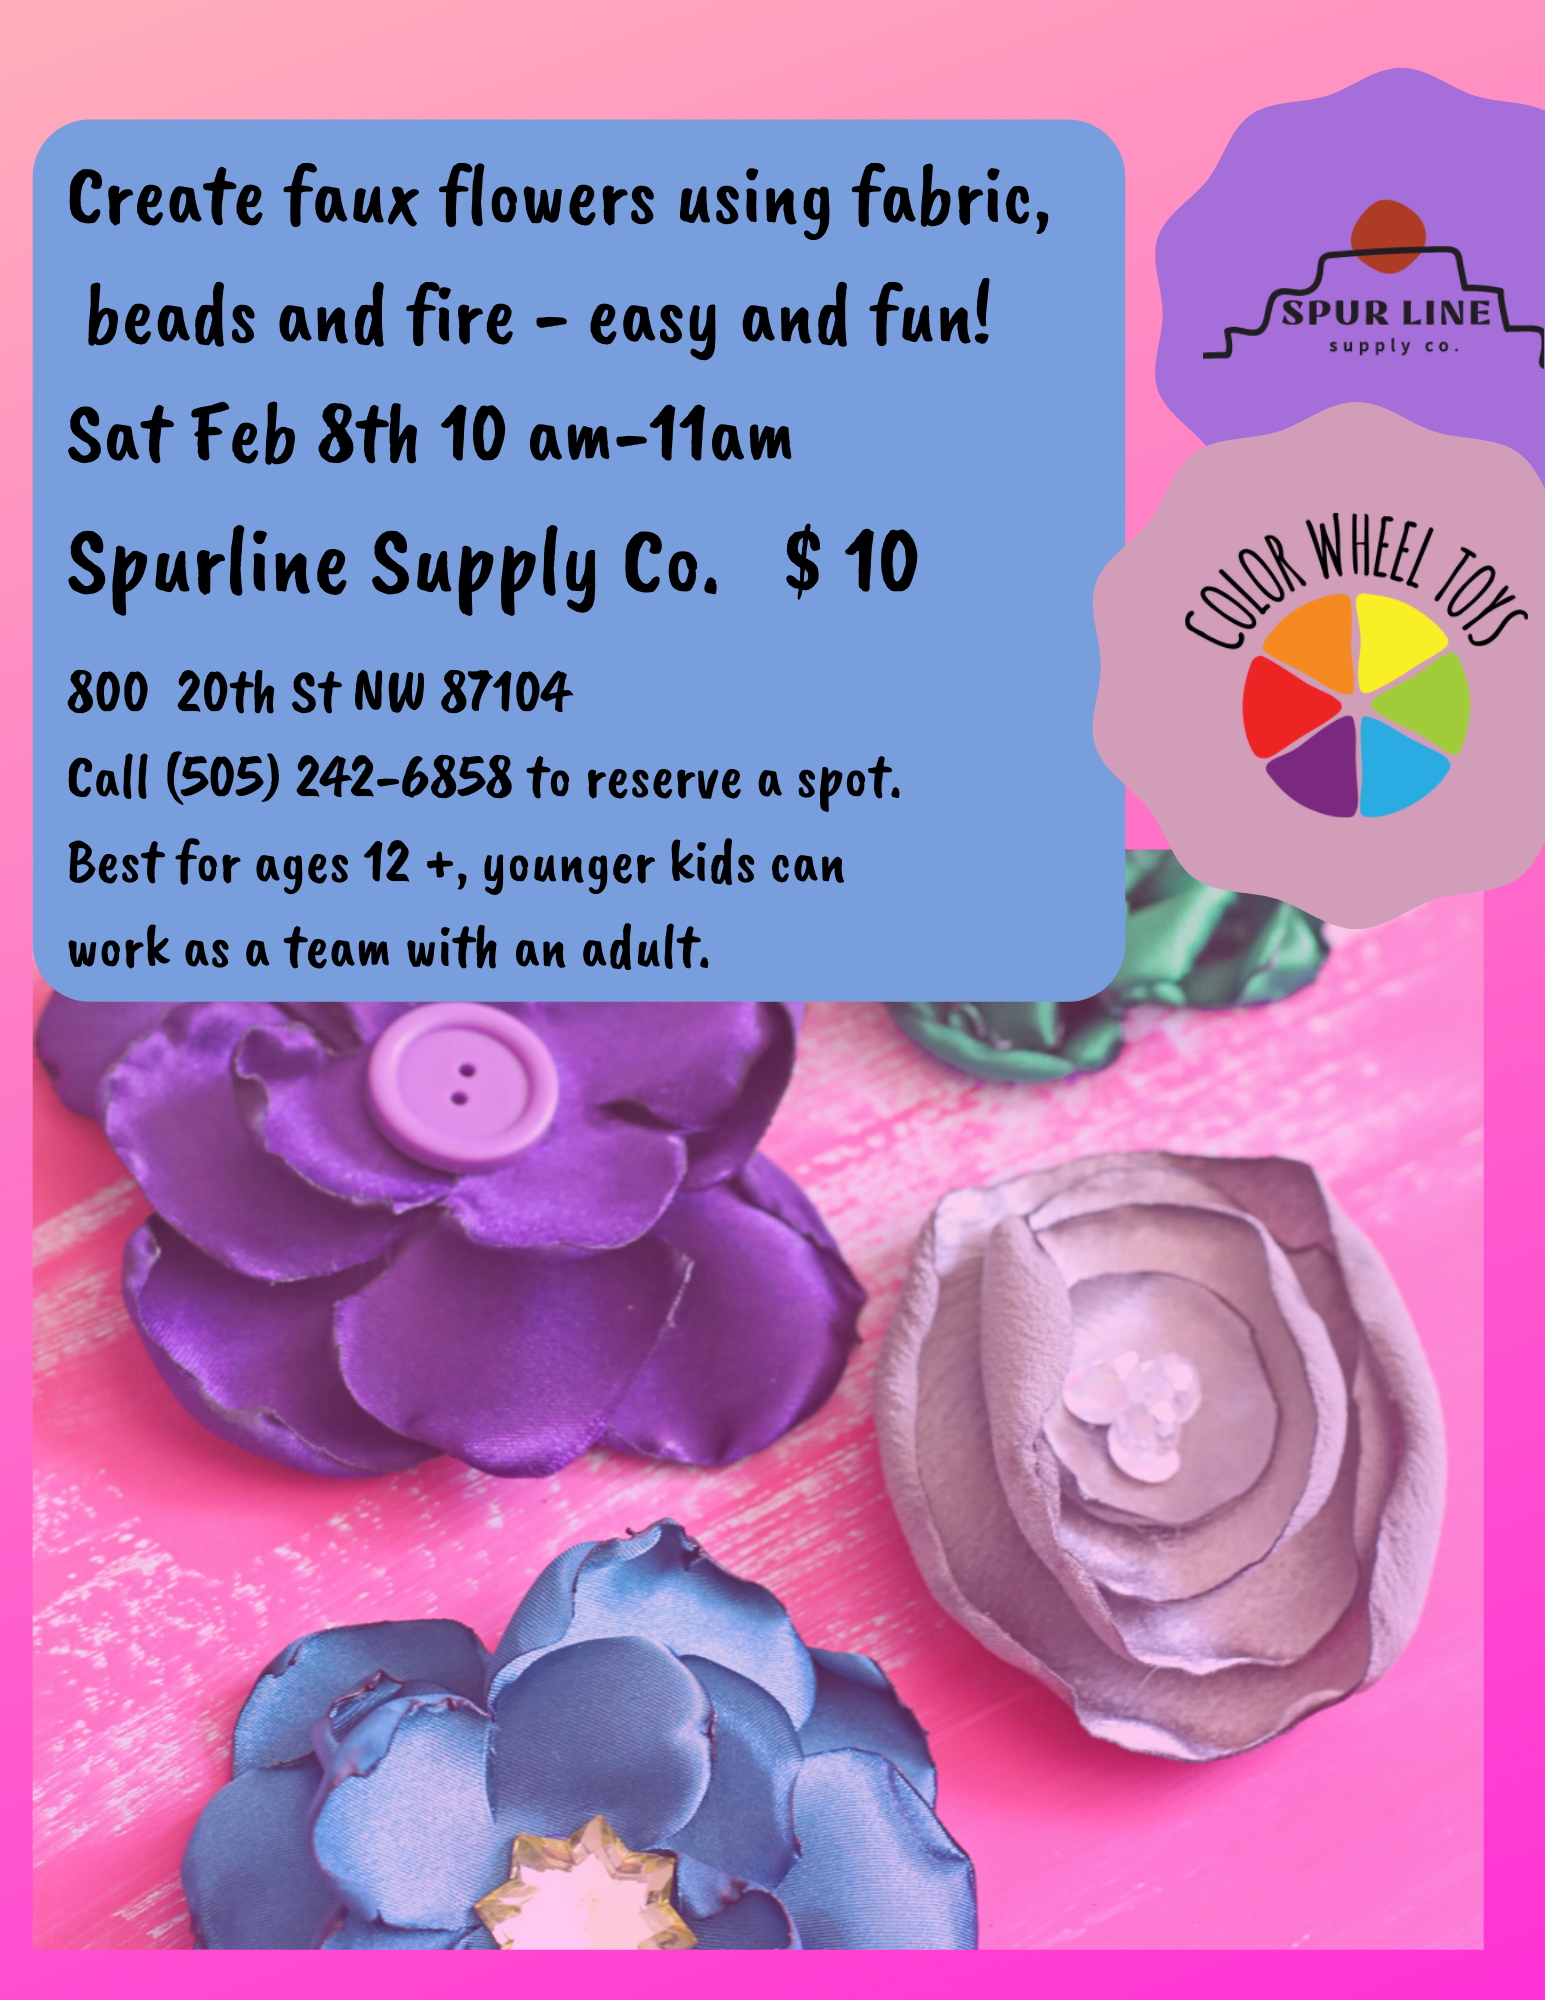 Create faux flowers using fabric, beads and fire! Sat Feb 8th 10 am-11am Spurline Supply Co 800 @0th St NW 87104 Call (505) 242-6858 to reserve a spot. Best fr ages 12 +, younger folks can work as a team with an adul